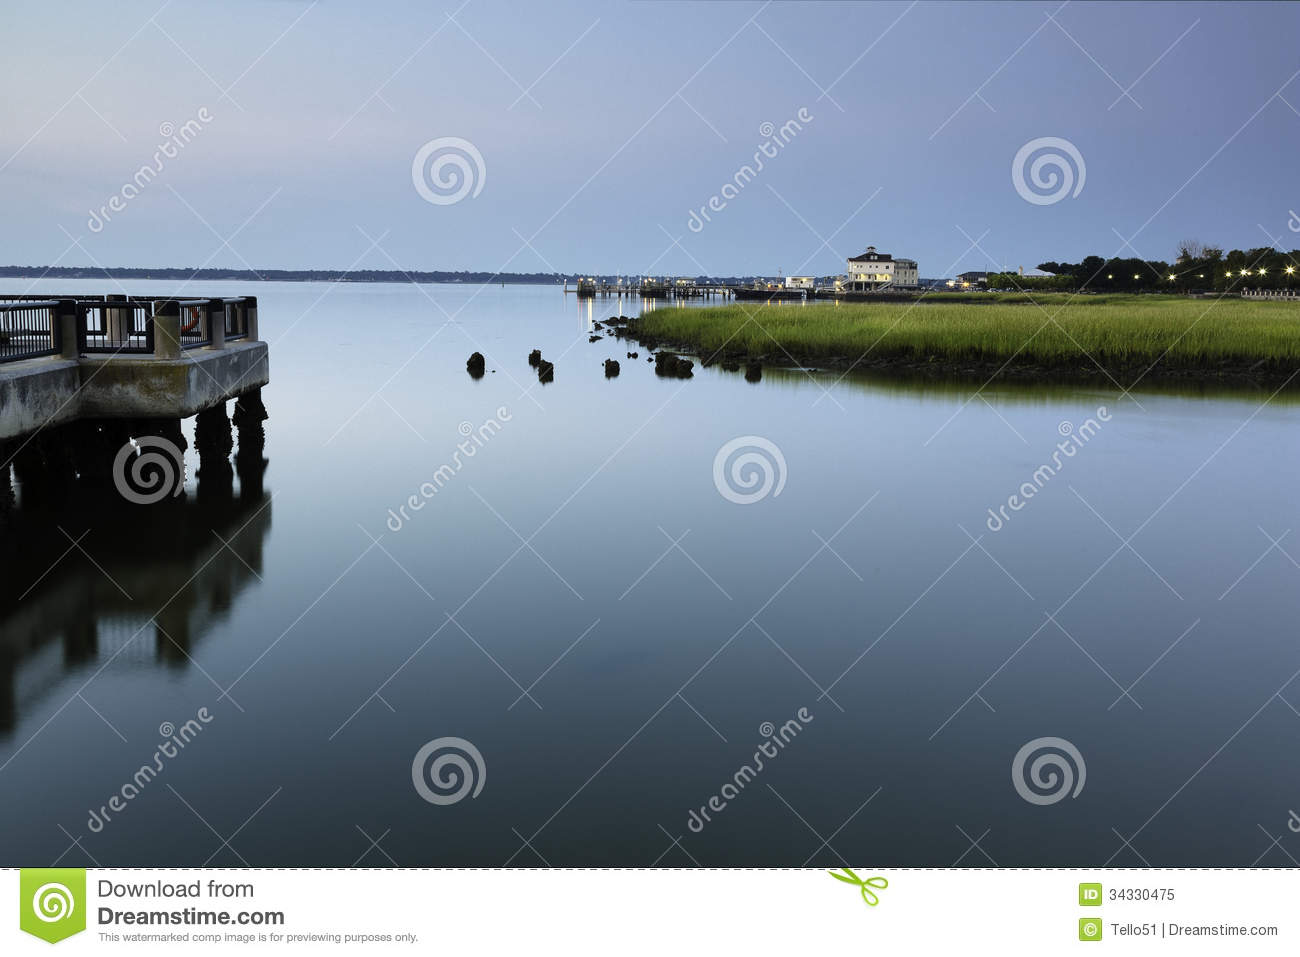 charleston on the rooftops with Royalty Free Stock Photo Charleston Battery Sunrise Over Harbor Facing Image34330475 on Patio Town Locations likewise Gallery Americas Party 2018 Celebration In Las Vegas additionally View From Above The J Parker Is Now Open Take A Look Around additionally Stock Illustration White Paper Banner Drop Shadow Round Corner Shadows Yellow Background Vector Illustration Image47043510 further Unique Nashville Engagement Session.